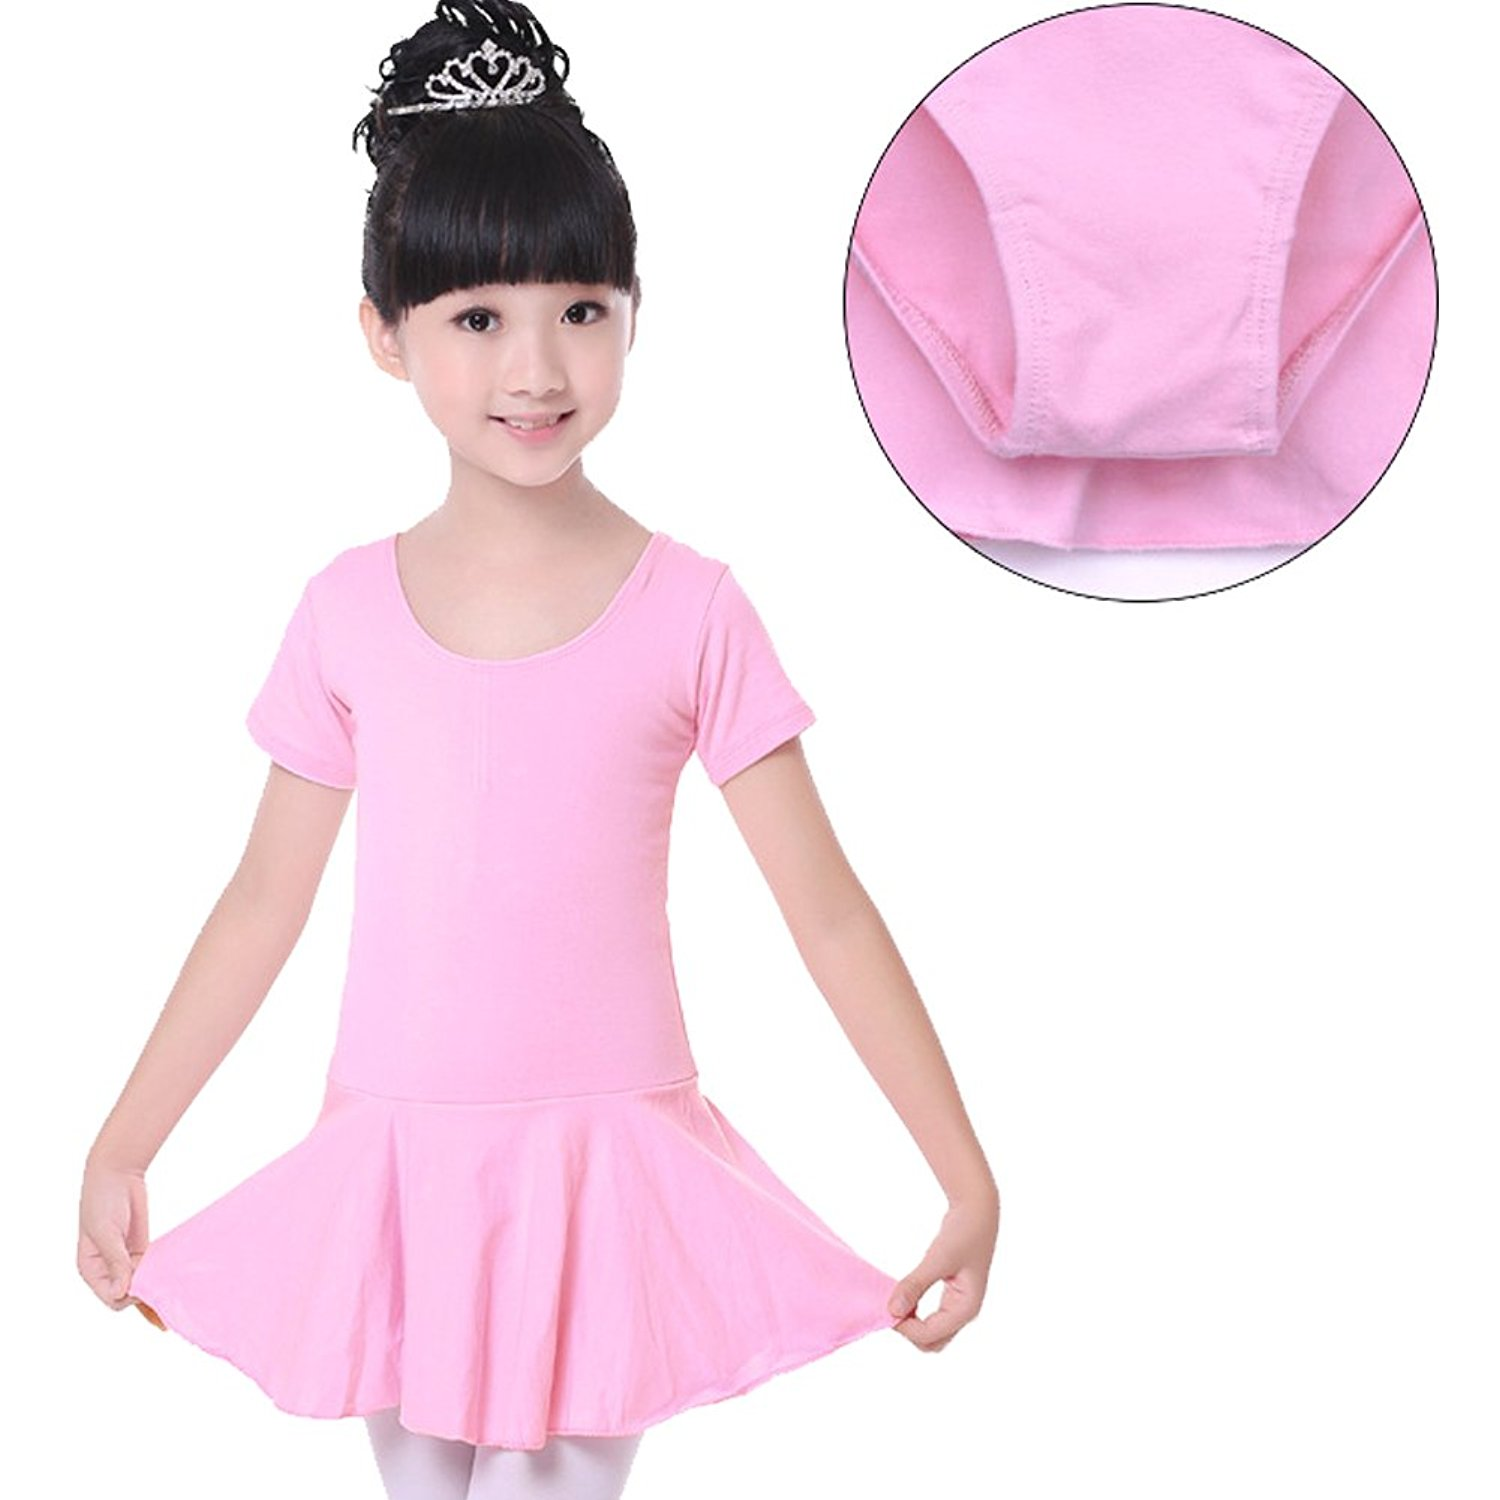 61aed3de0f0d Cheap Pink Skirted Leotard